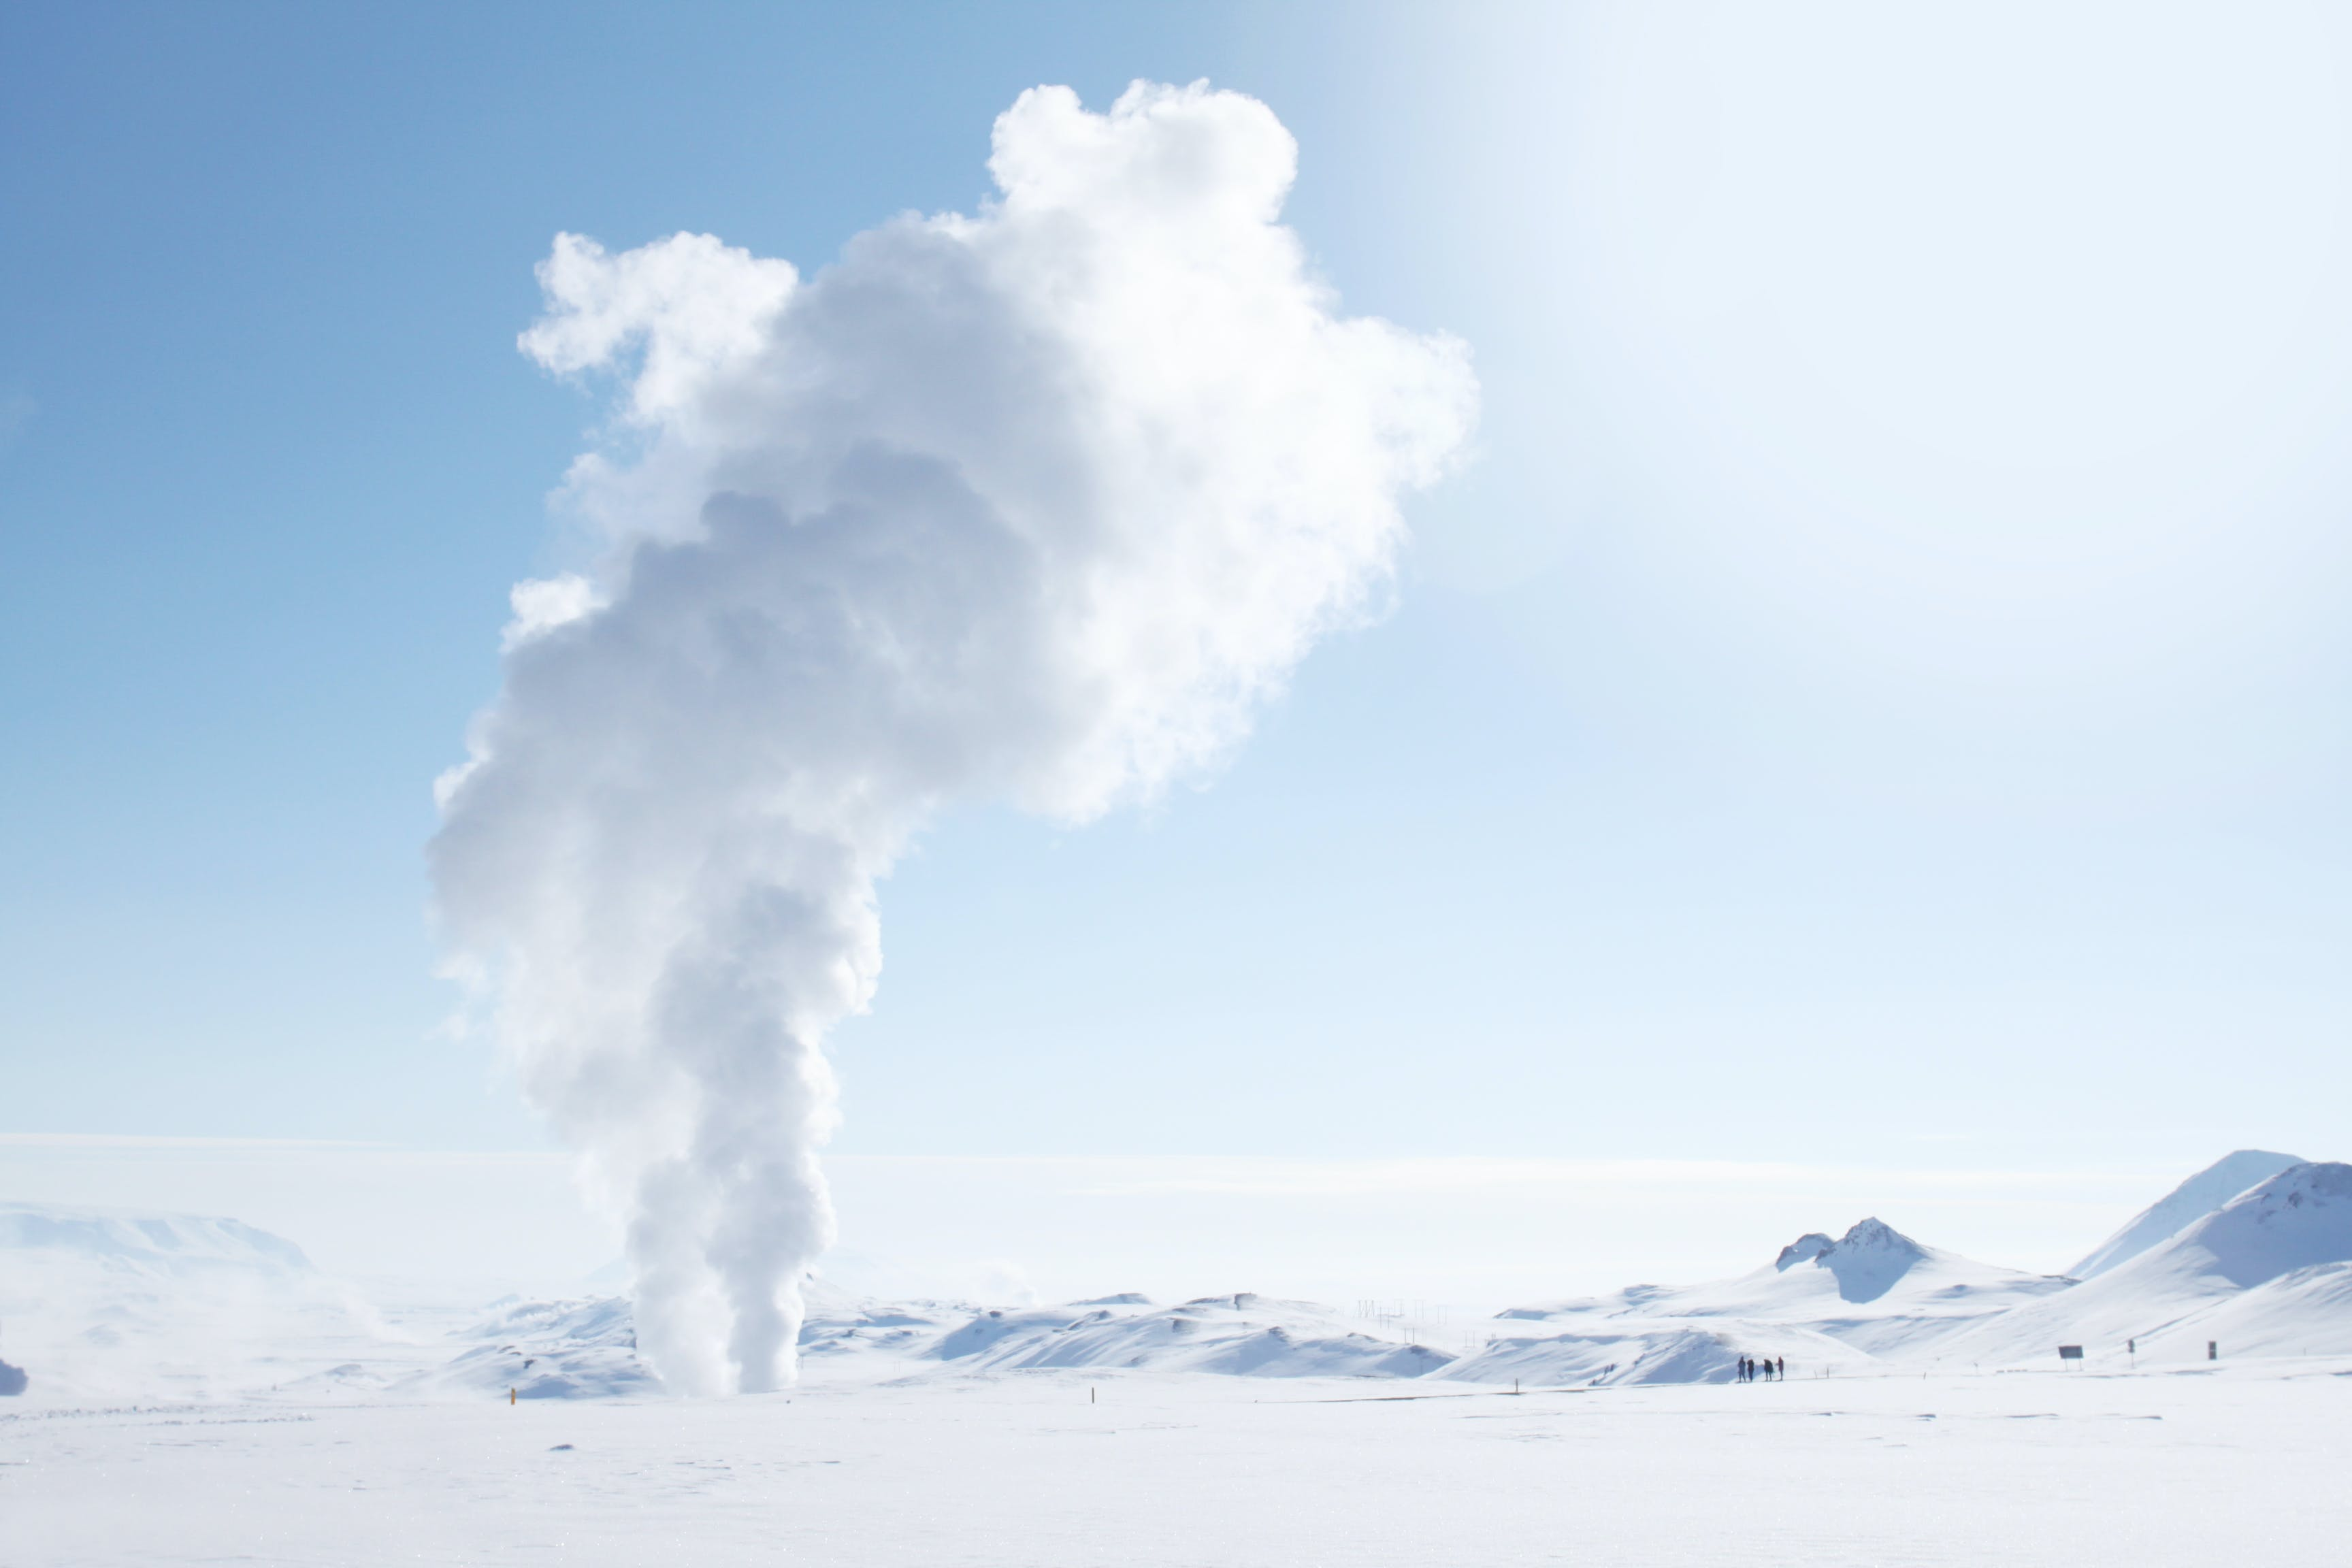 Smoke Rising from Snow-covered Field